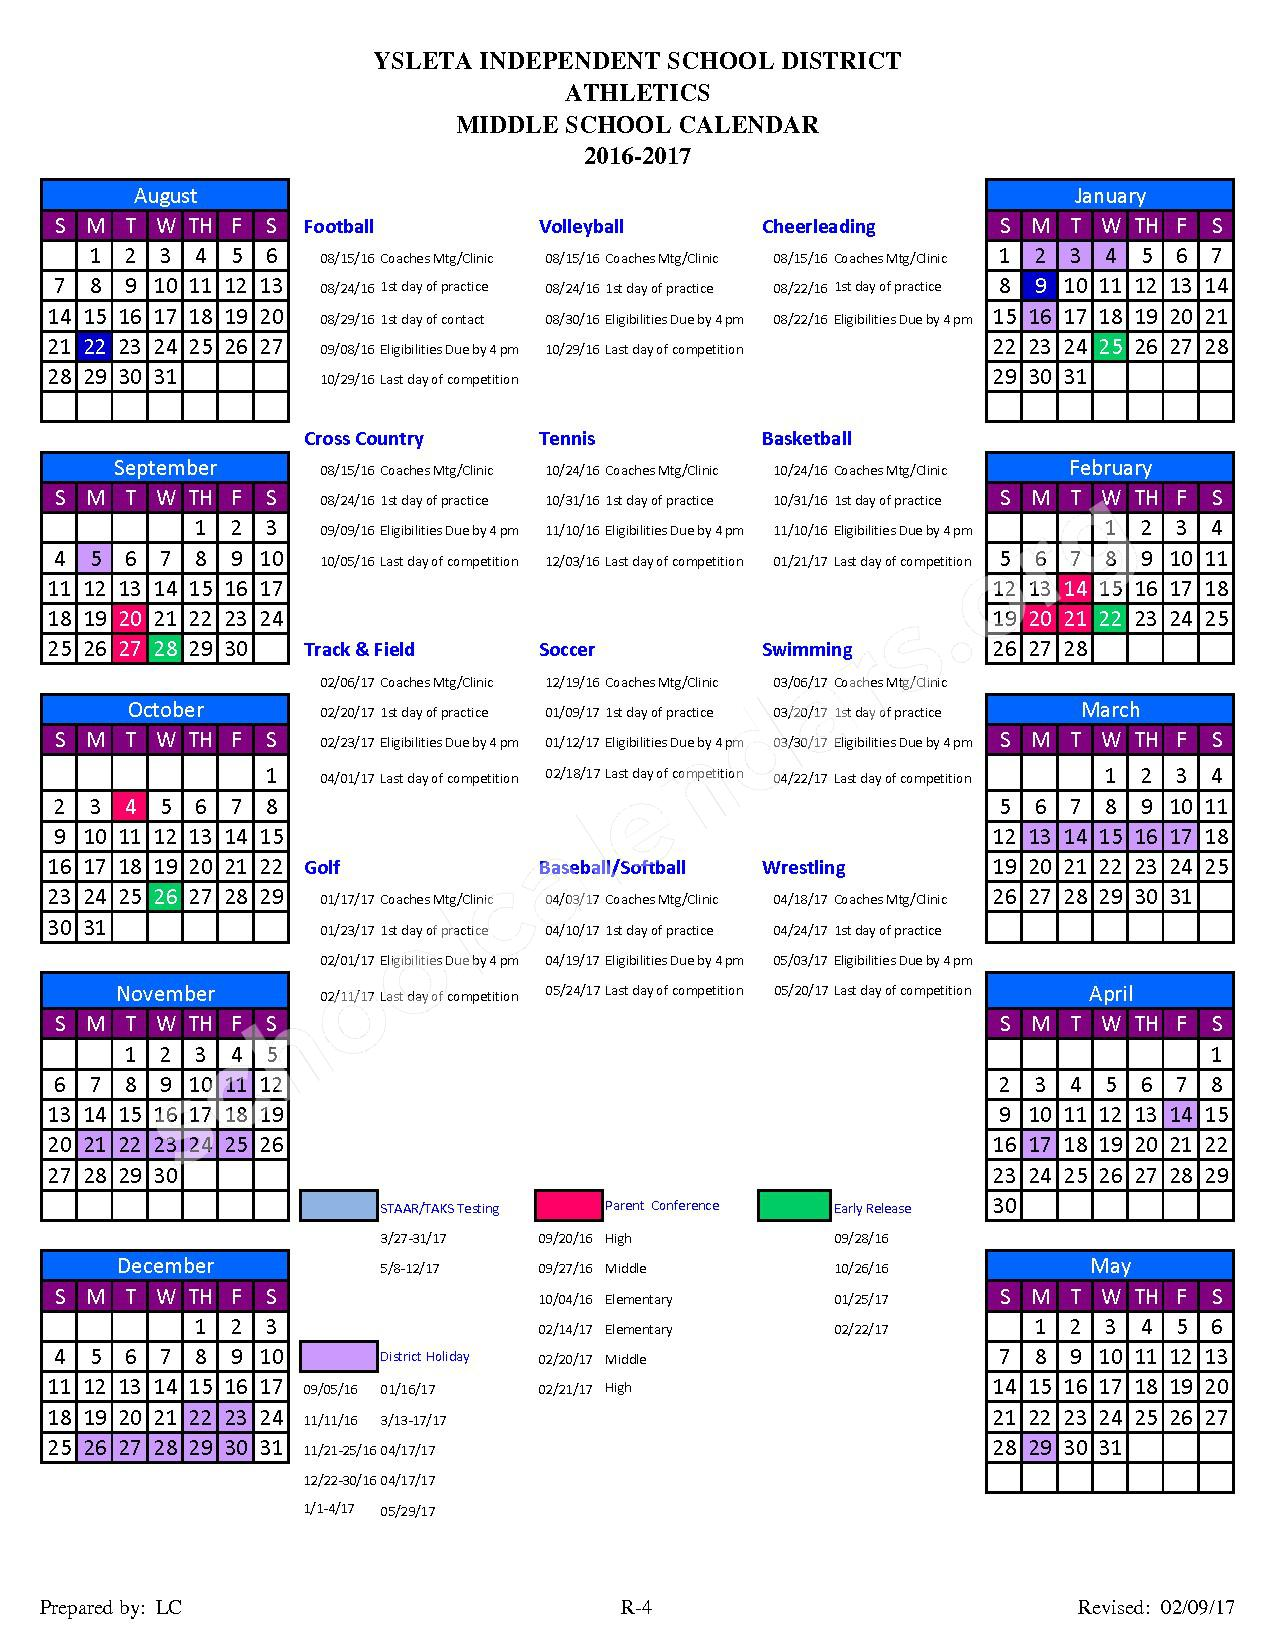 *Middle School Athletic Calendar 2016 - 2017 (revised 02/09/17) R-4 – Desertaire Elementary School – page 1